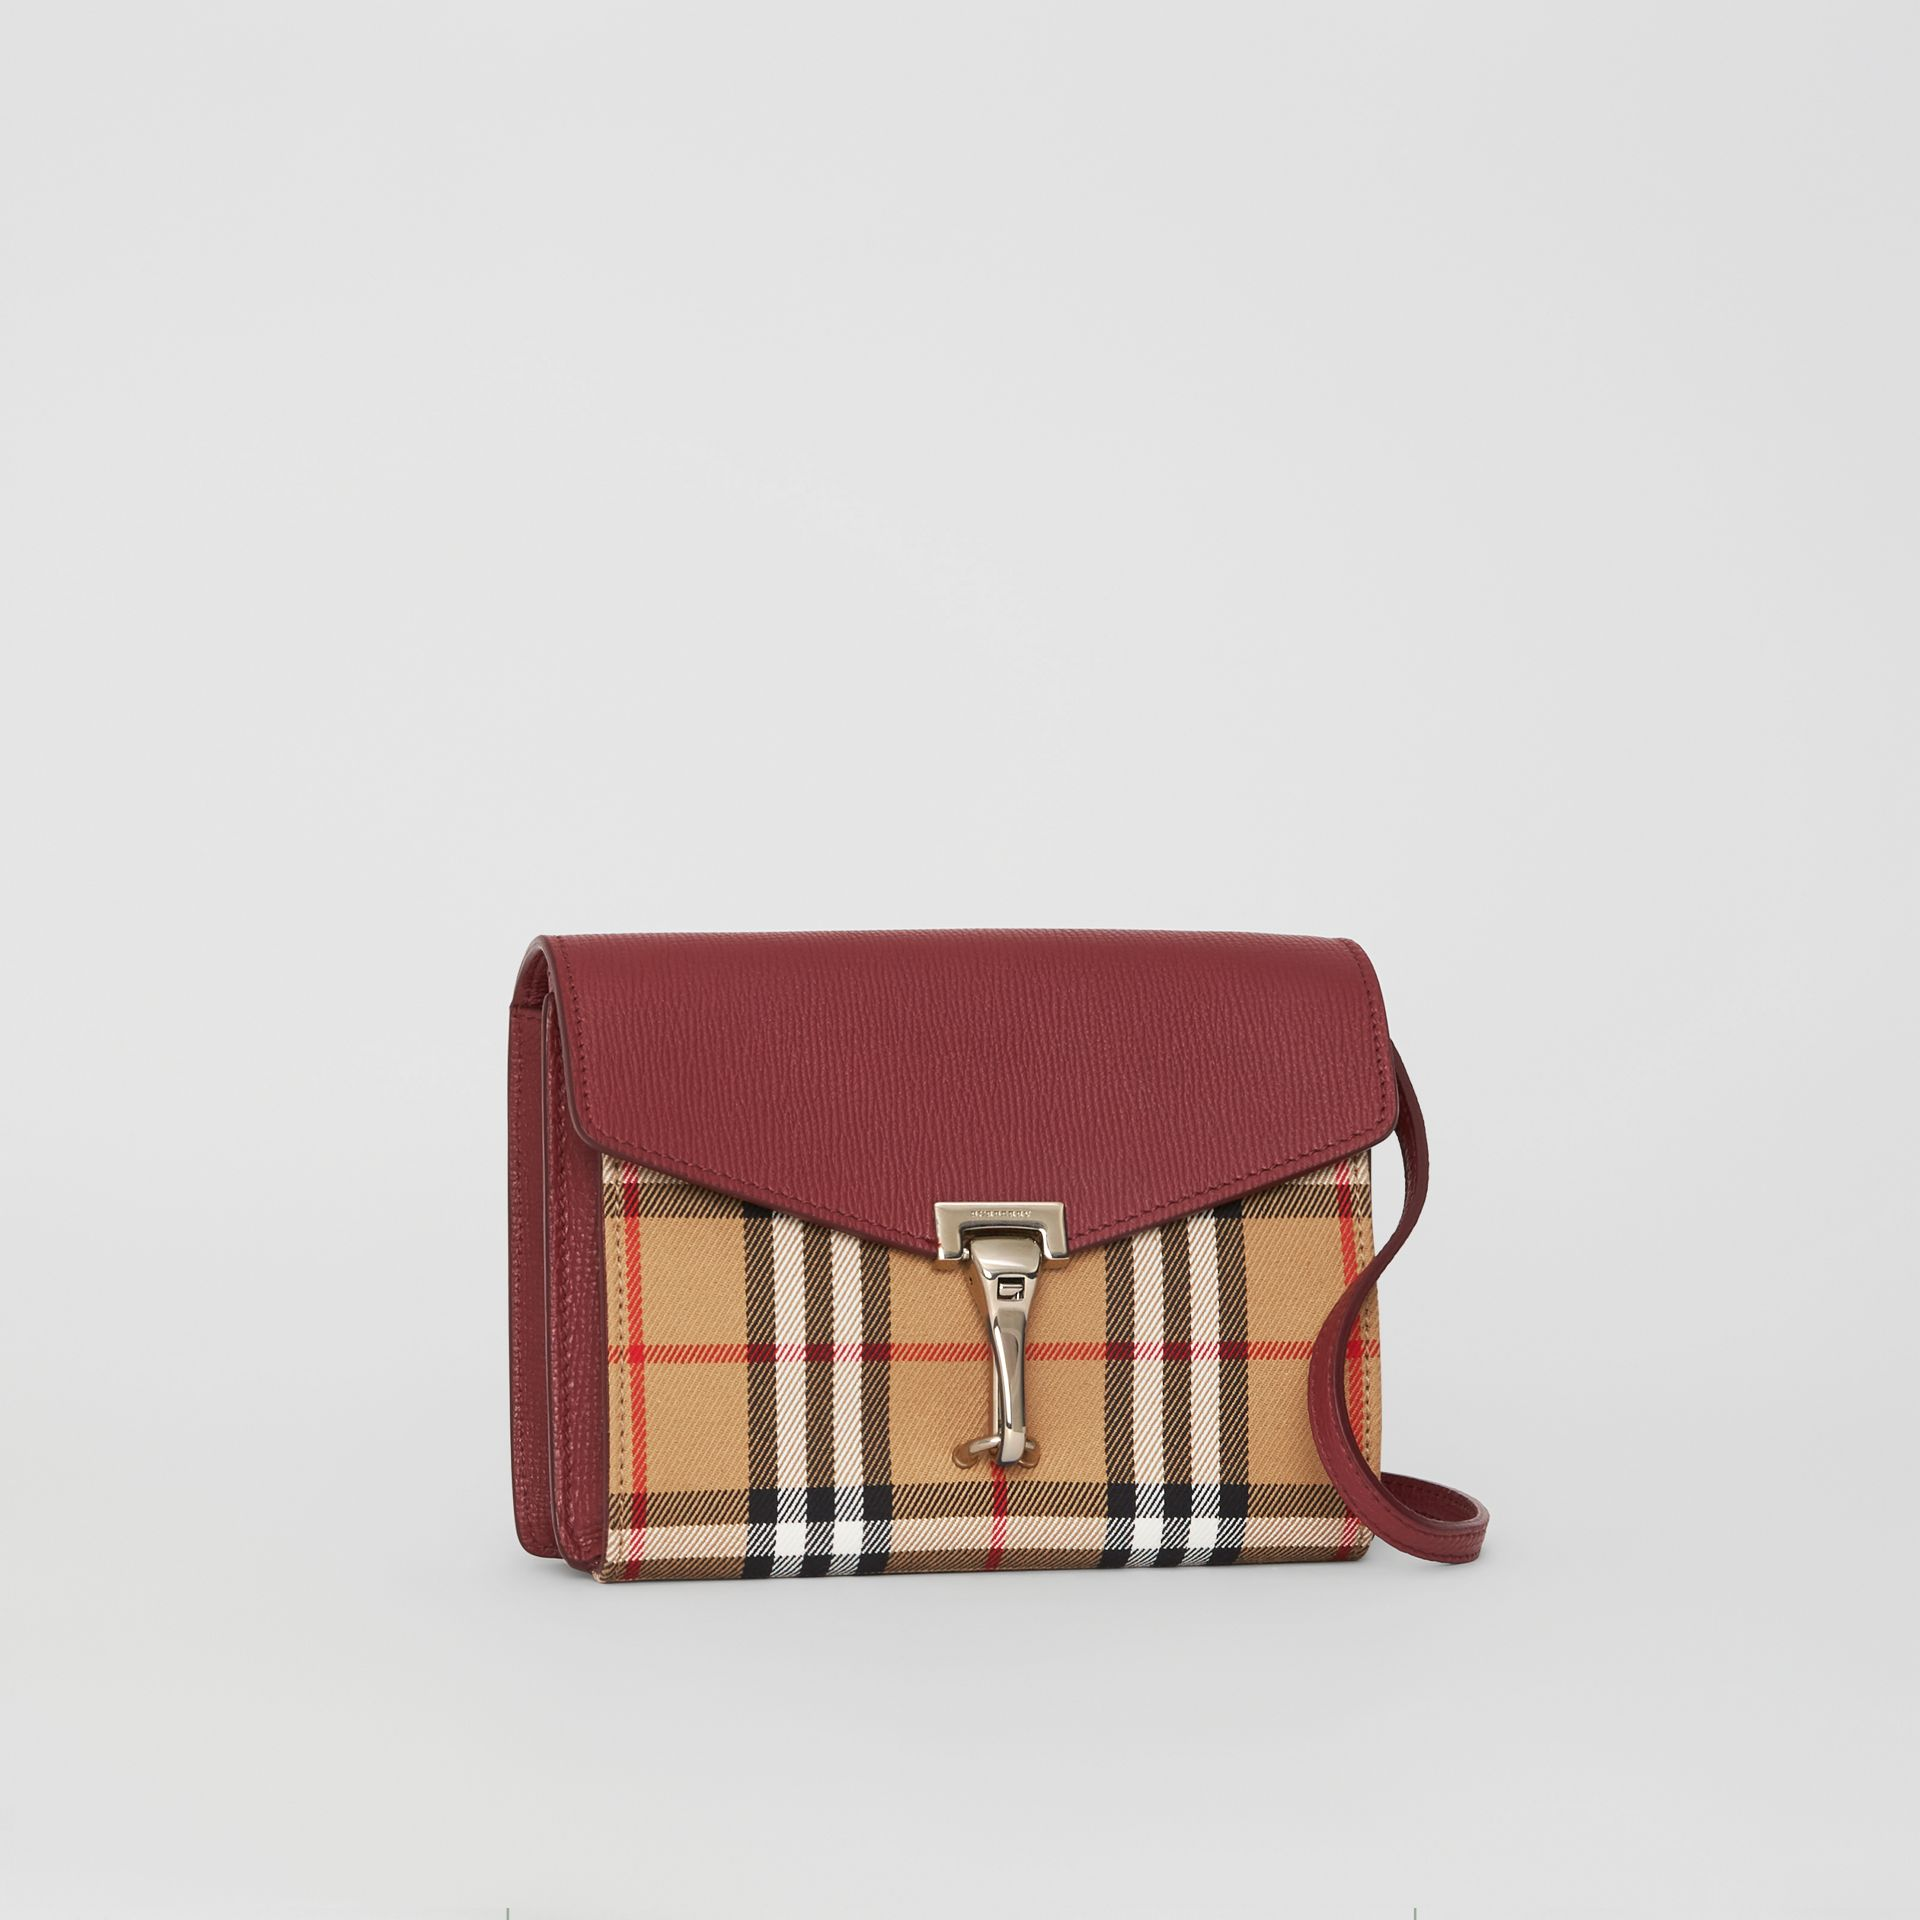 Mini Leather and Vintage Check Crossbody Bag in Crimson - Women | Burberry Hong Kong S.A.R - gallery image 5